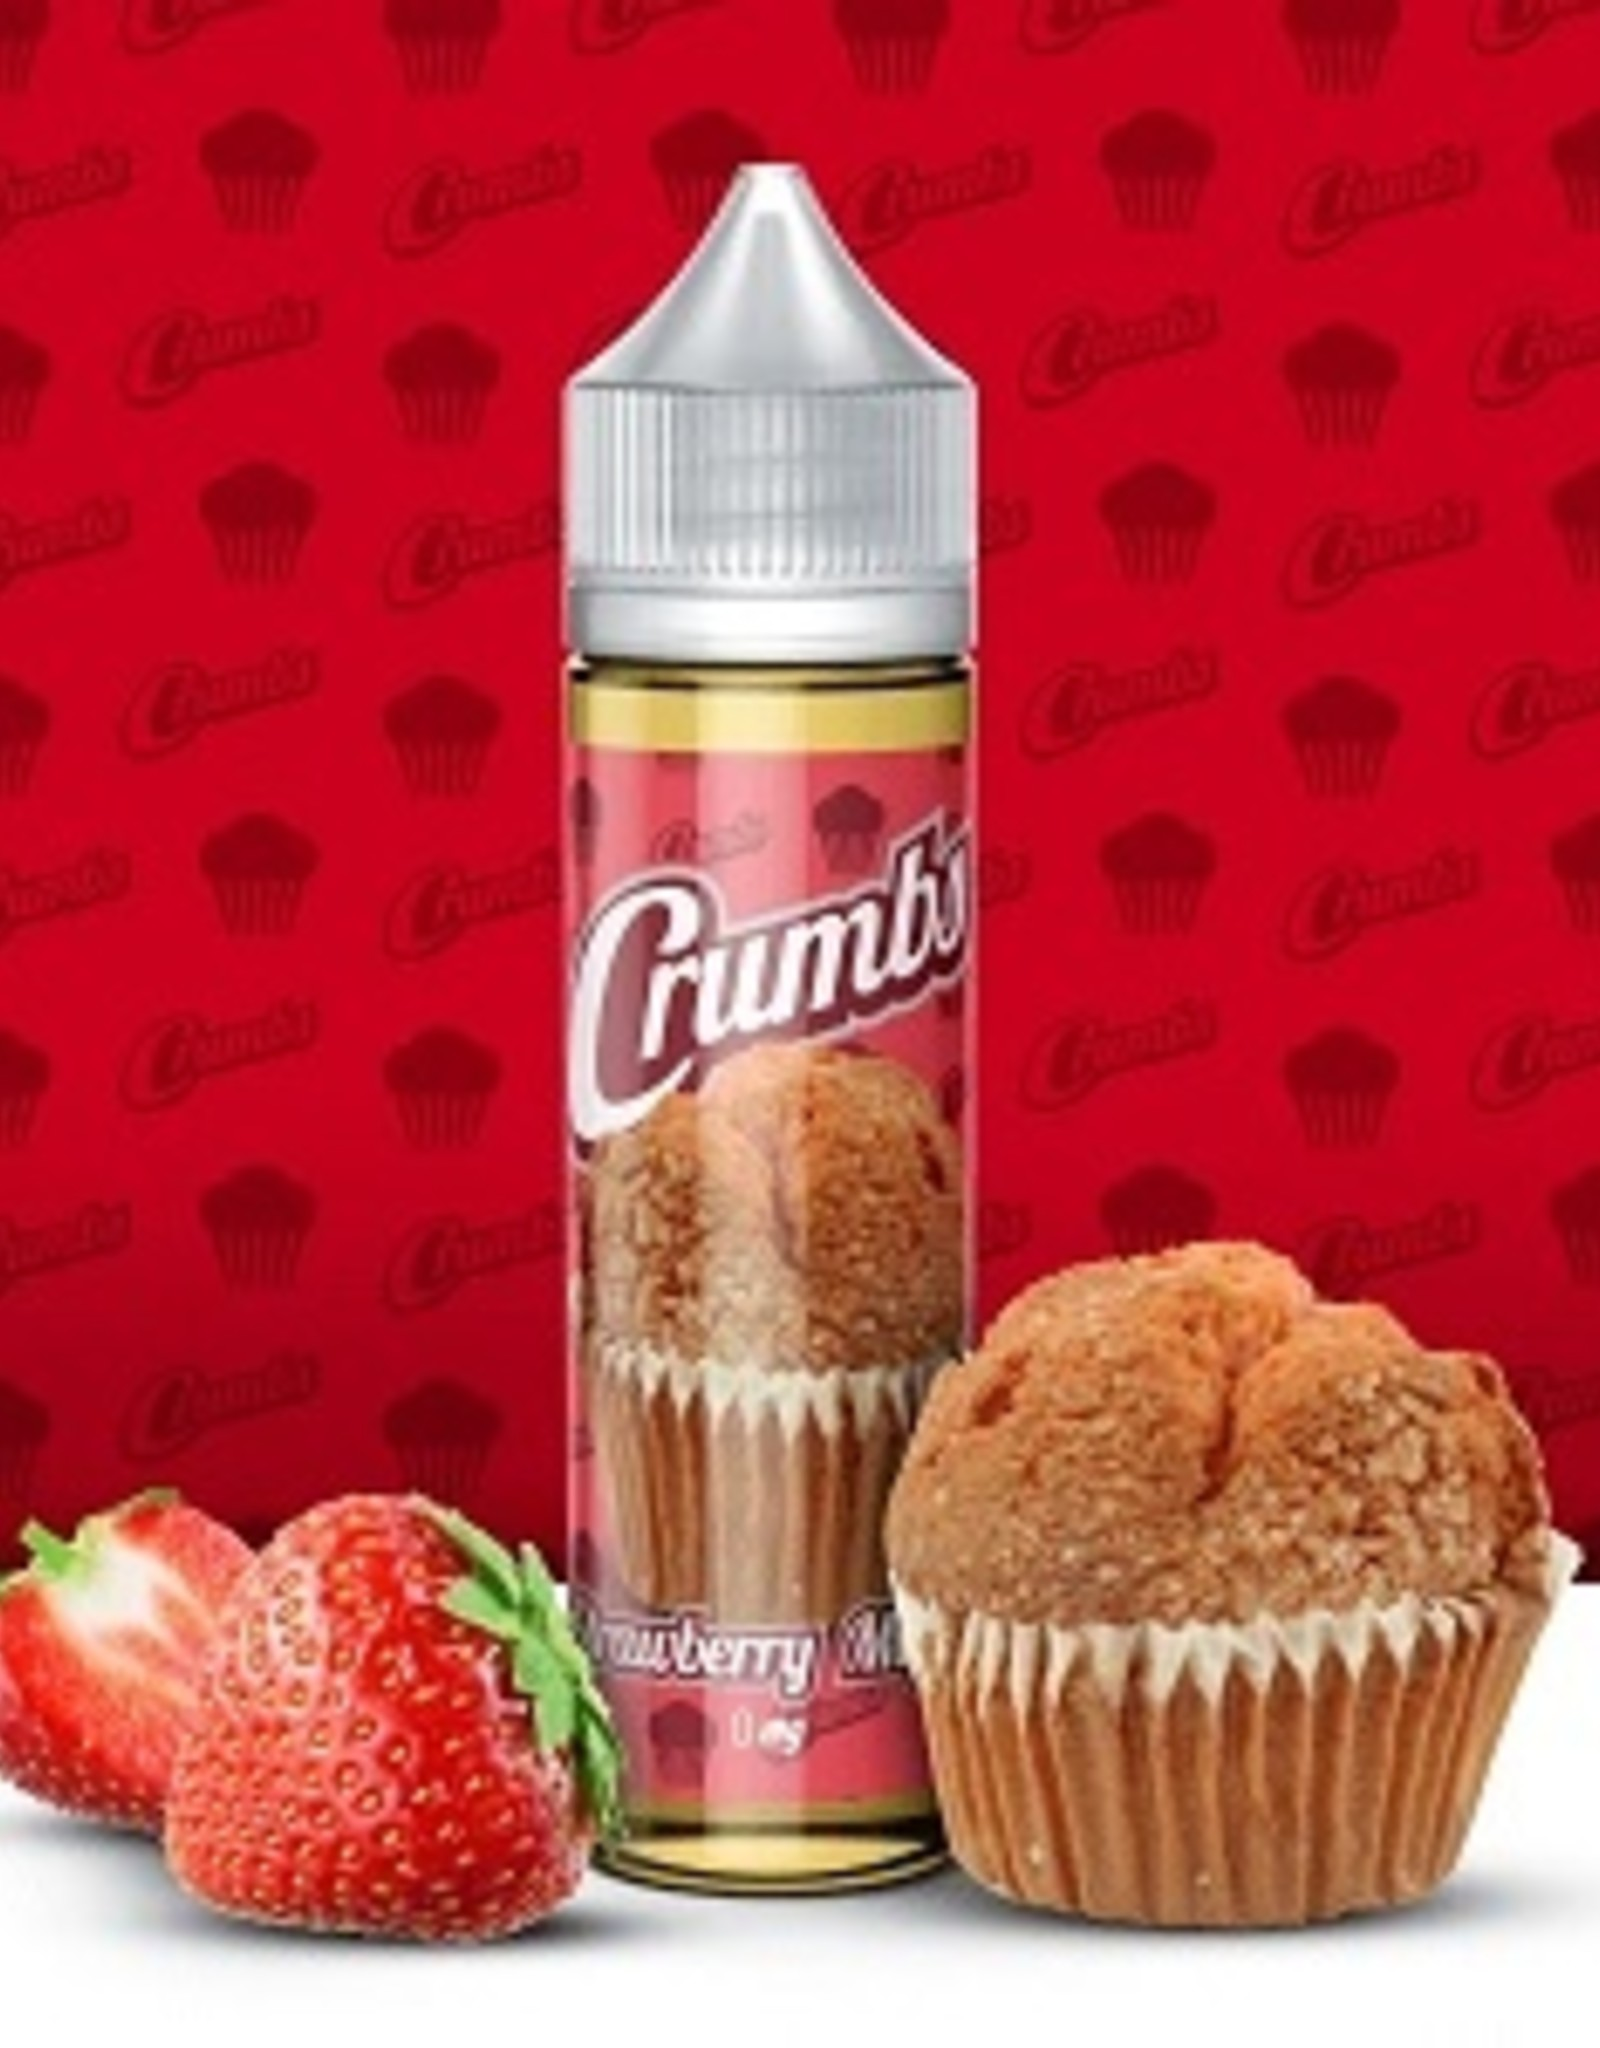 Strawberry Muffin By Crumbs